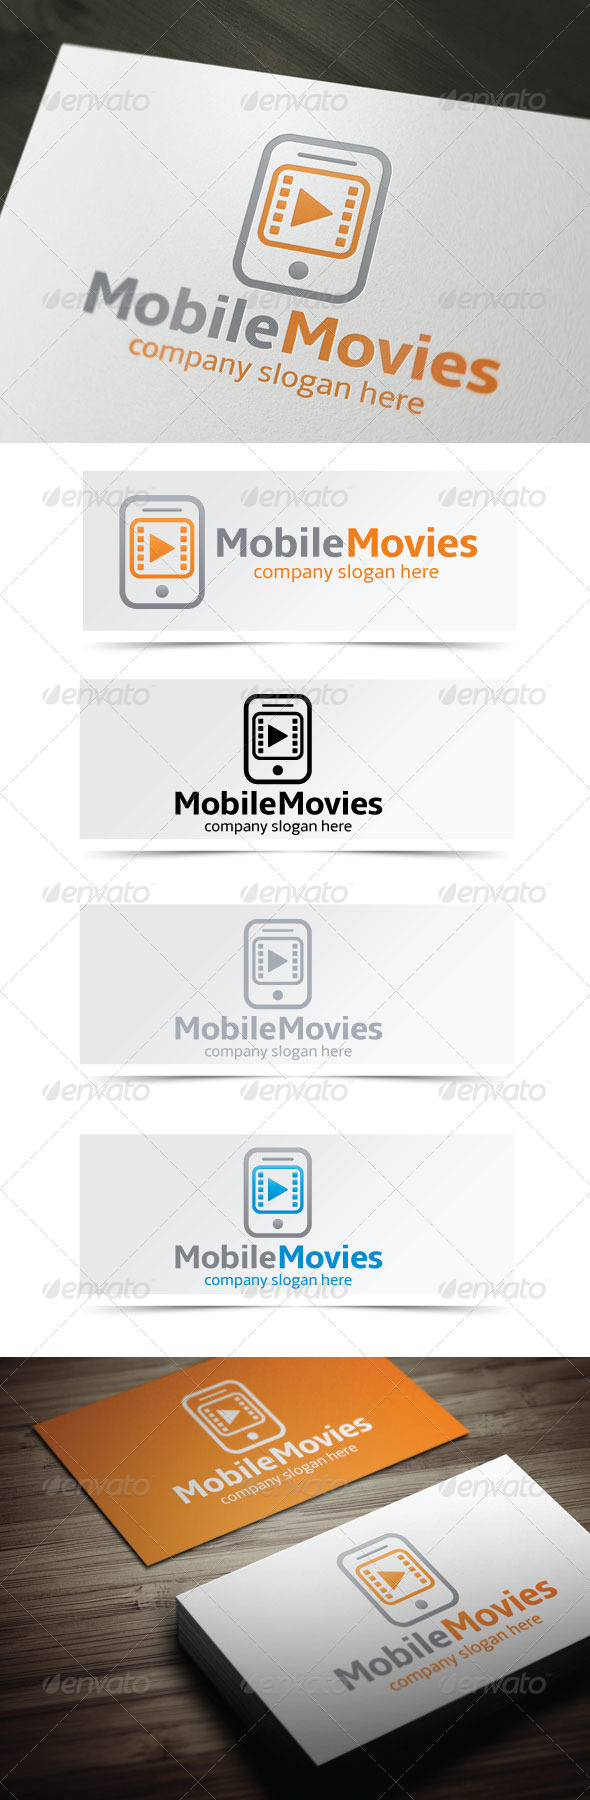 GraphicRiver Mobile Movies 4411669